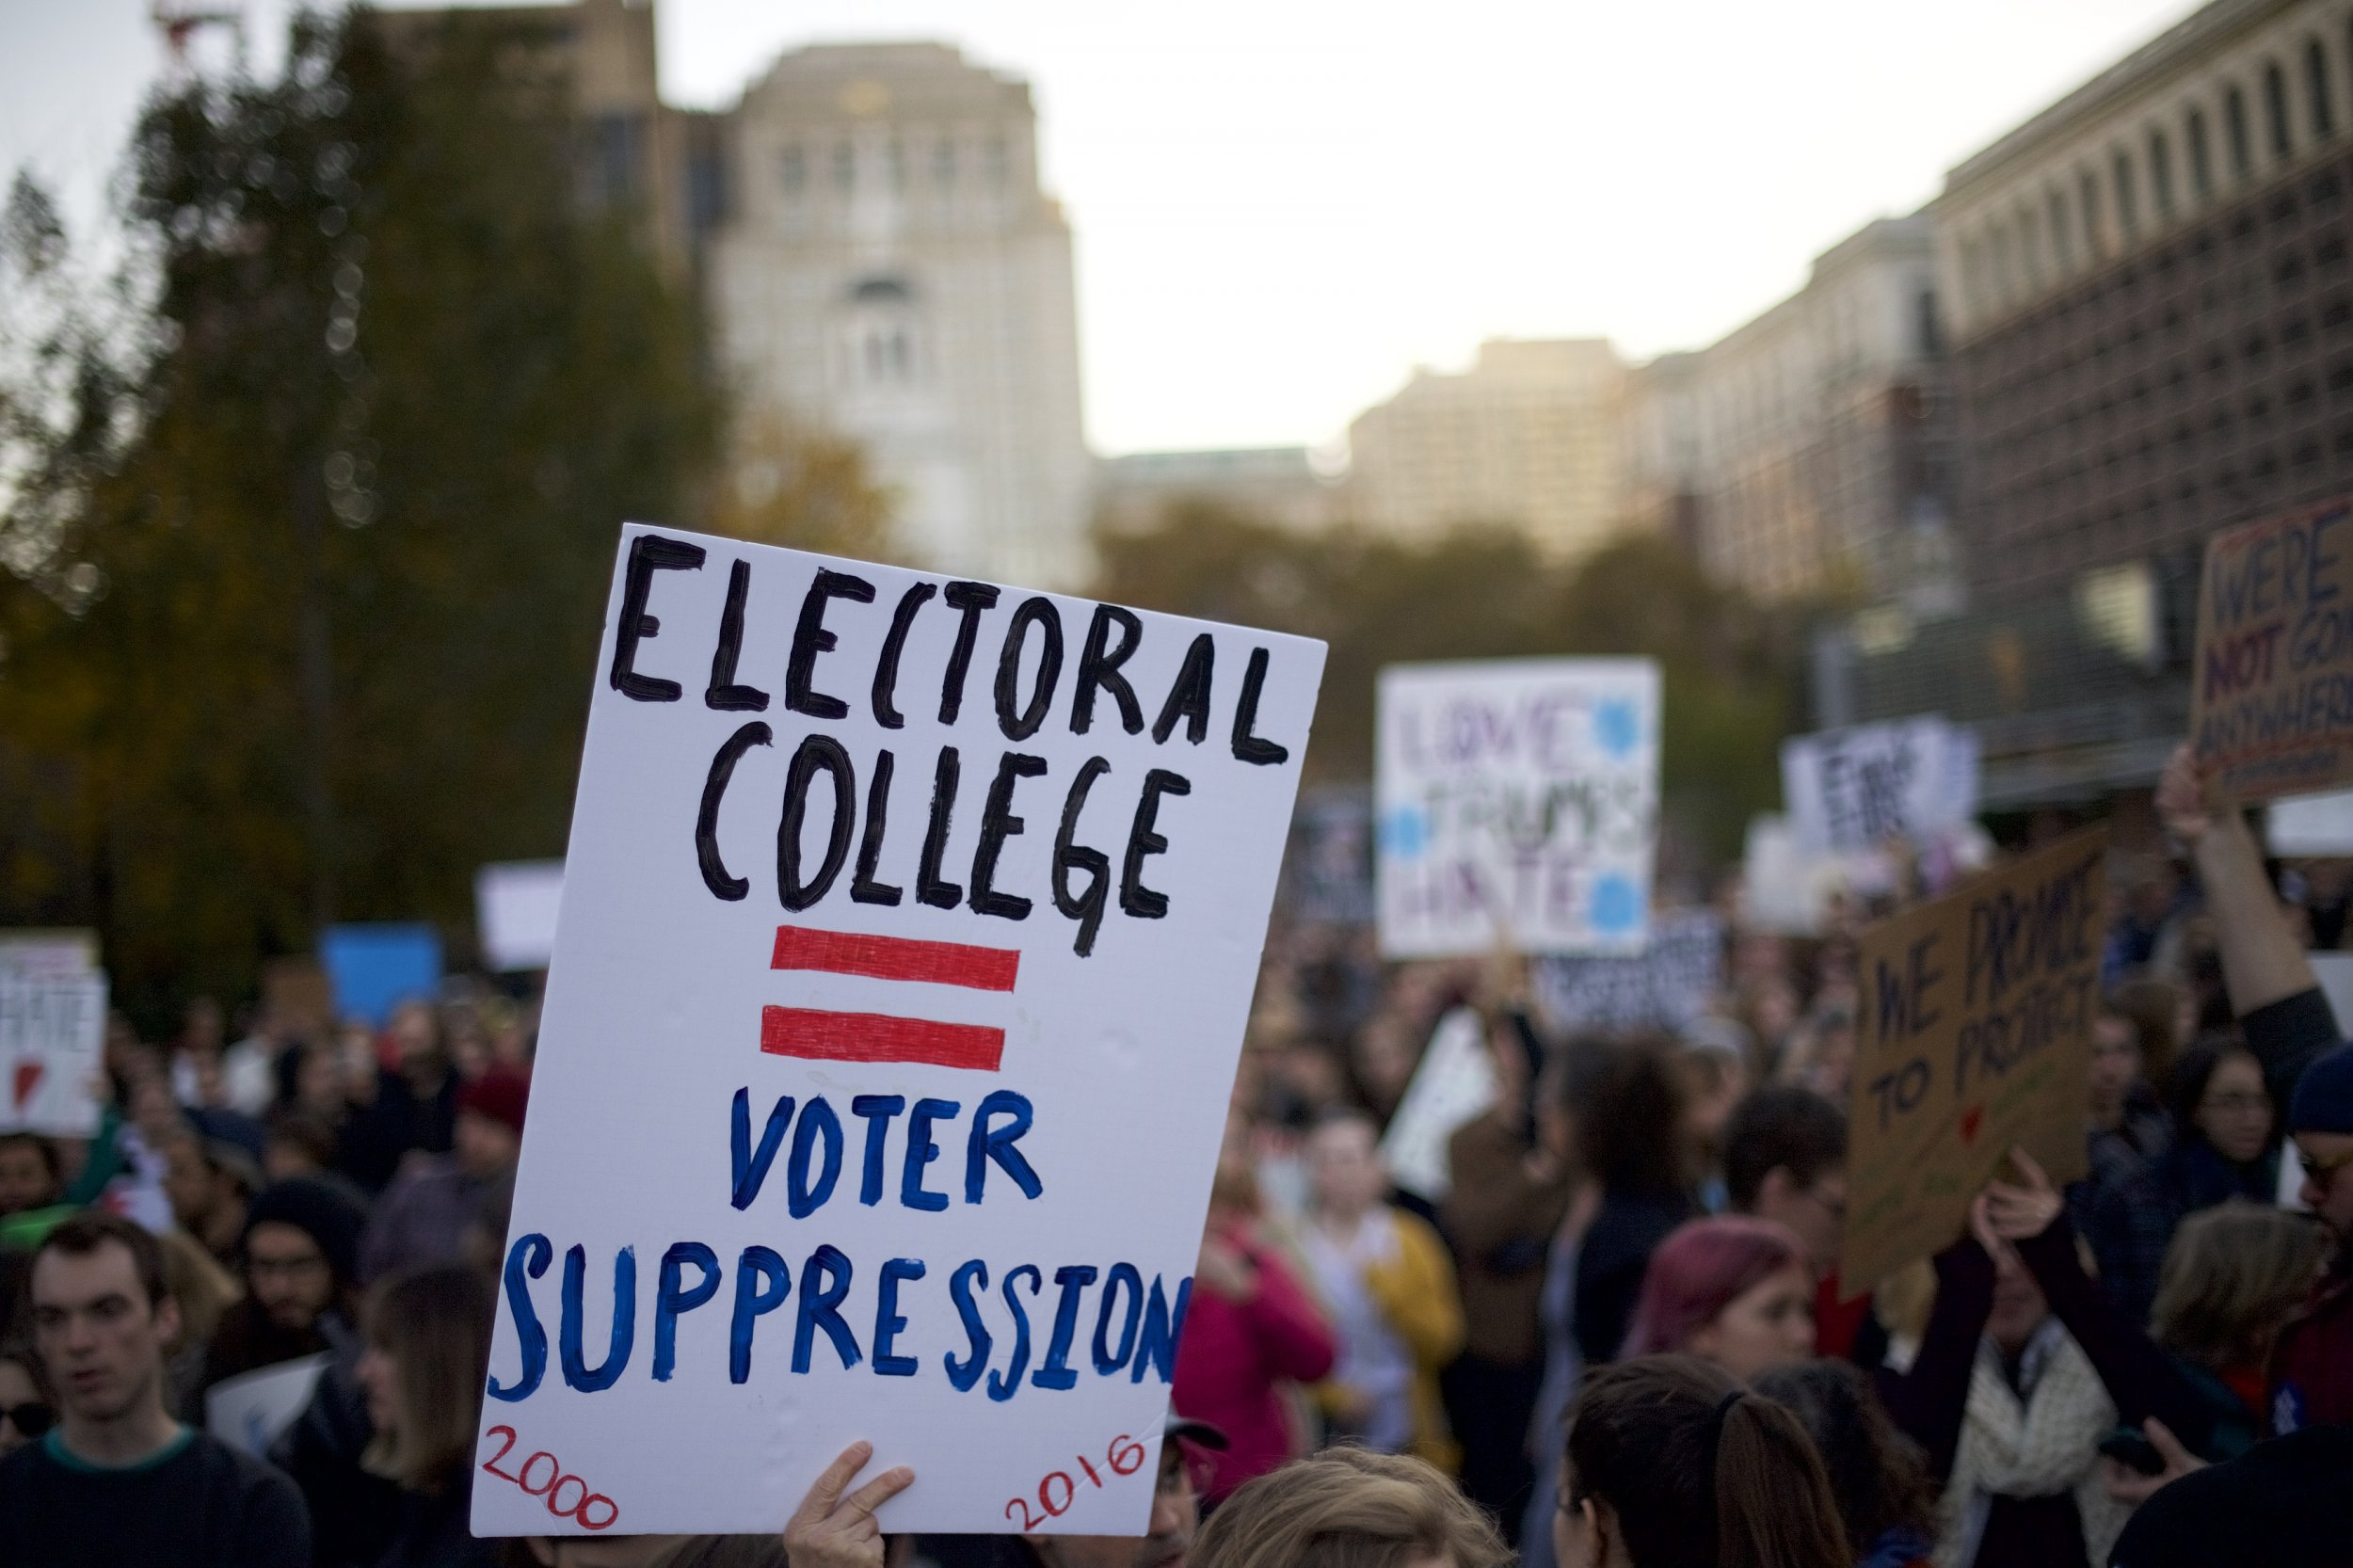 electoral college protest amendment